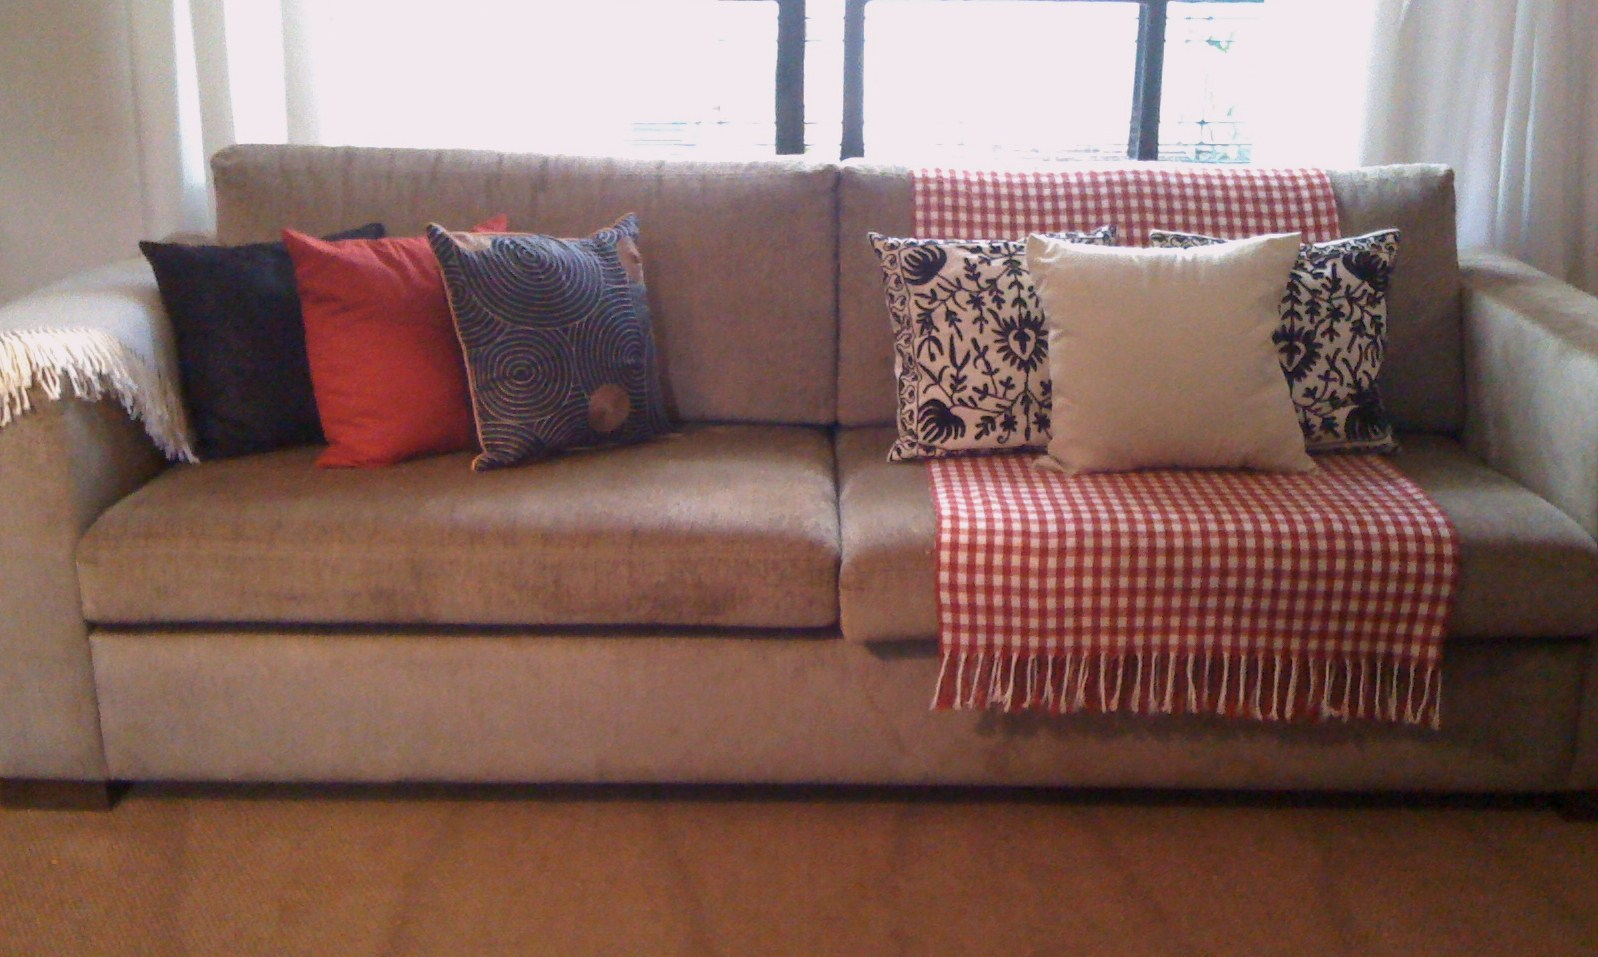 decoracao e interiores : decoracao e interiores:Manta De Sofa